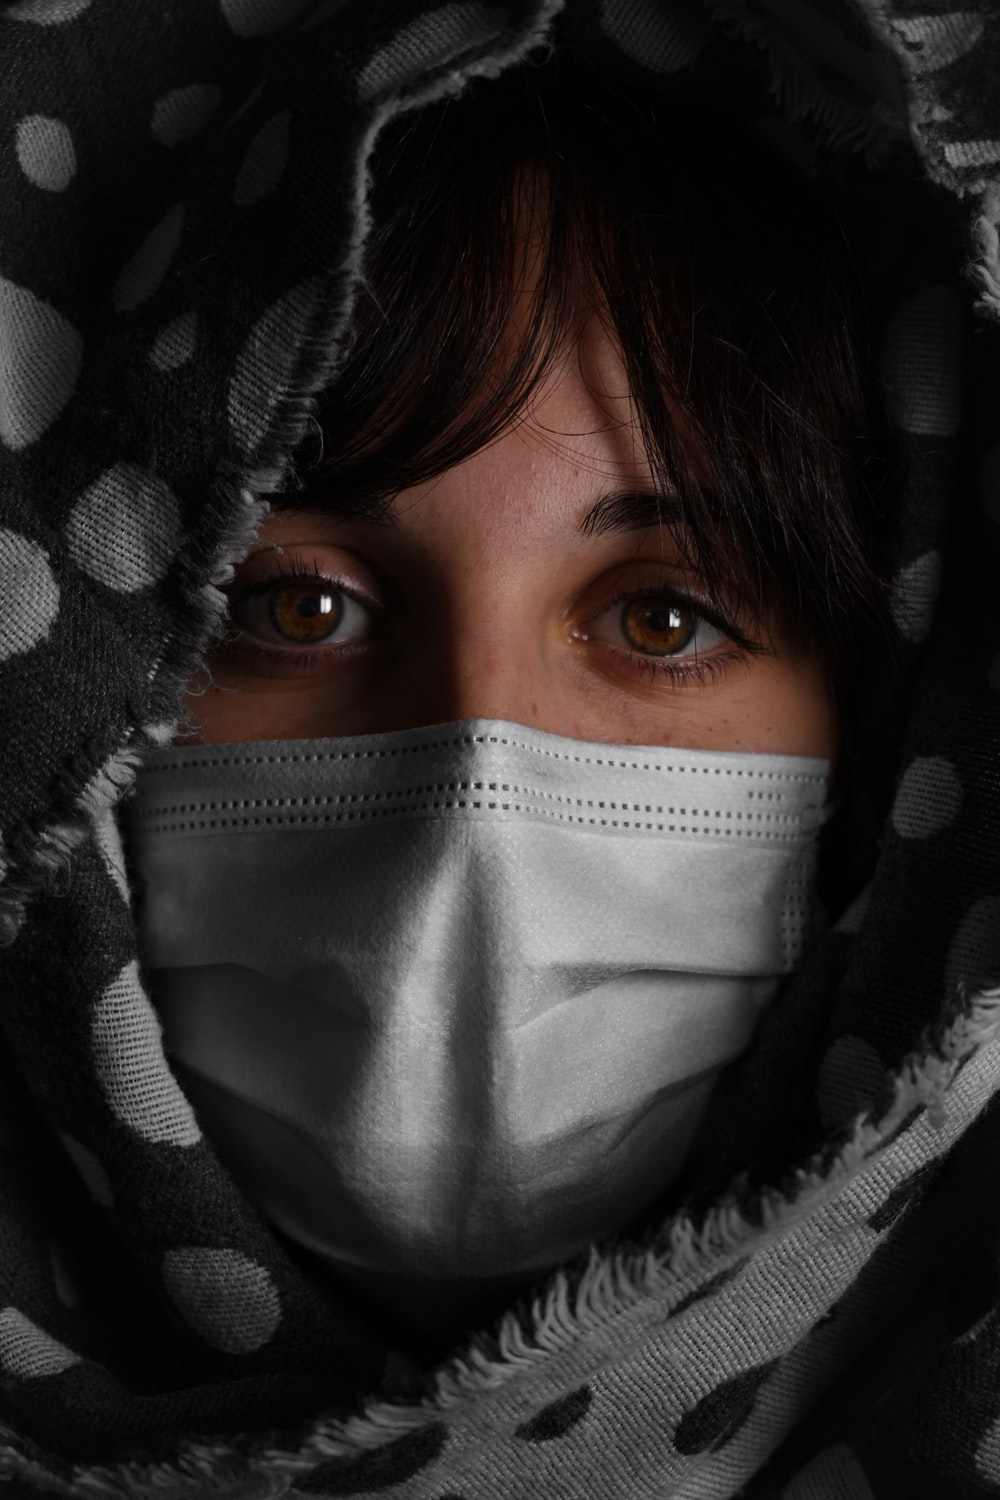 woman covering her face with black and white textile